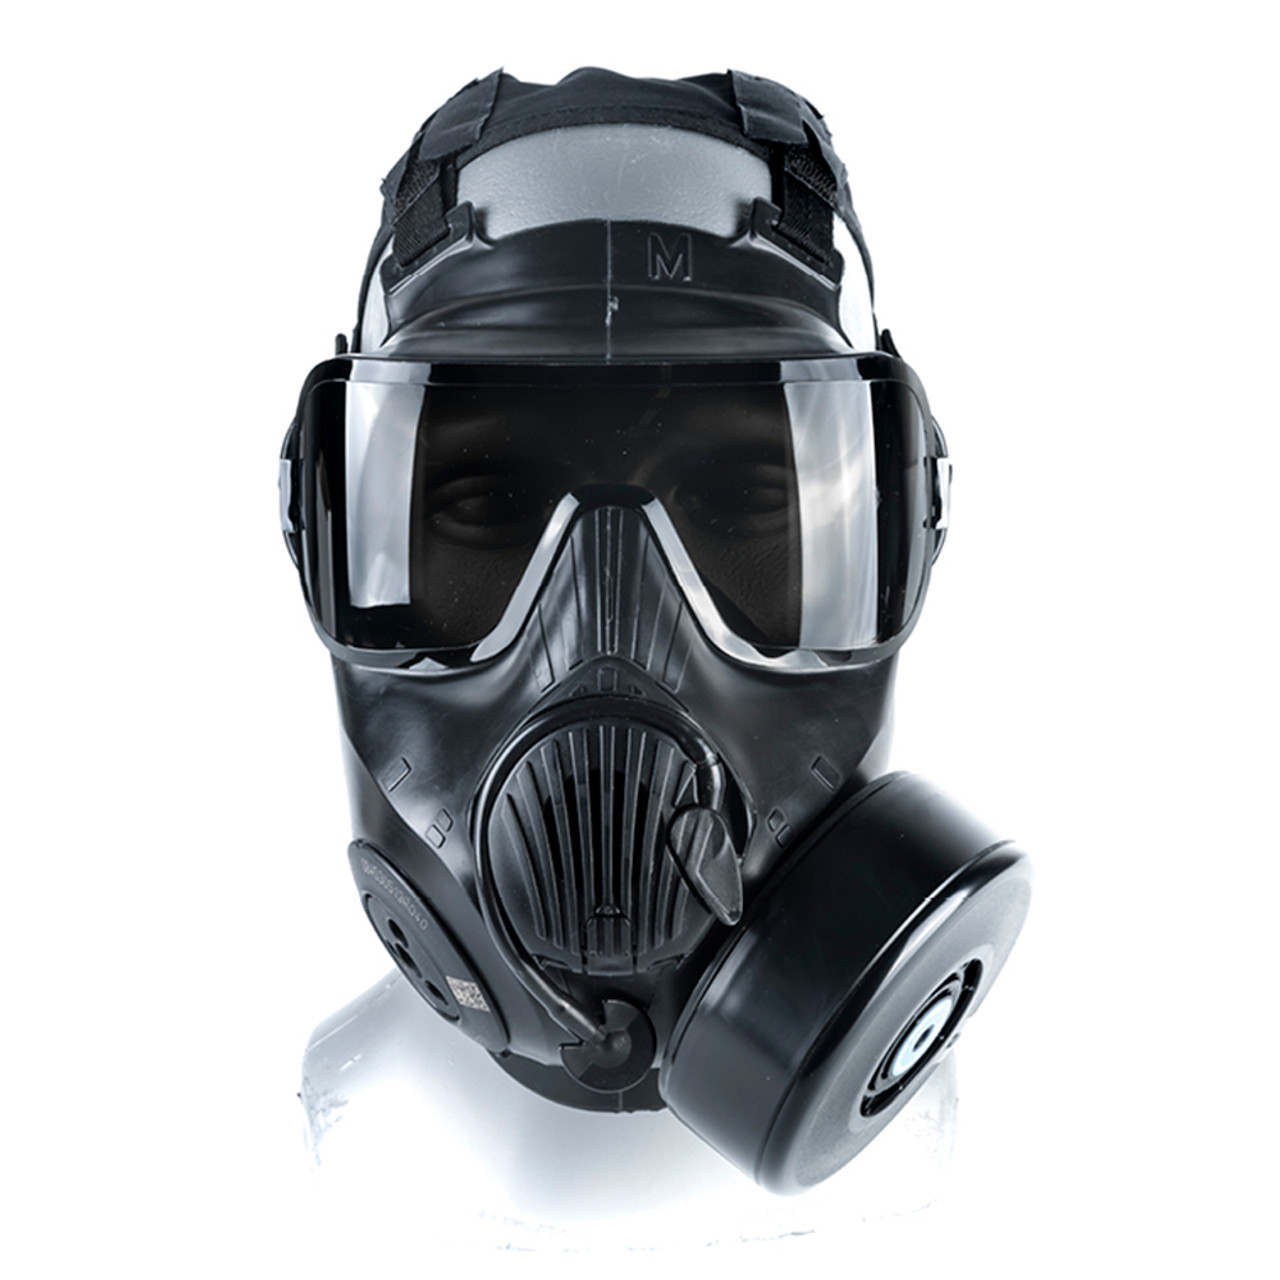 Avon Protection C50 Twinport Assembly, Single Mask (APR) Air Purifying Respirator, Scratch Resistant, with Optional Voice Projection Unit, Filter not Included